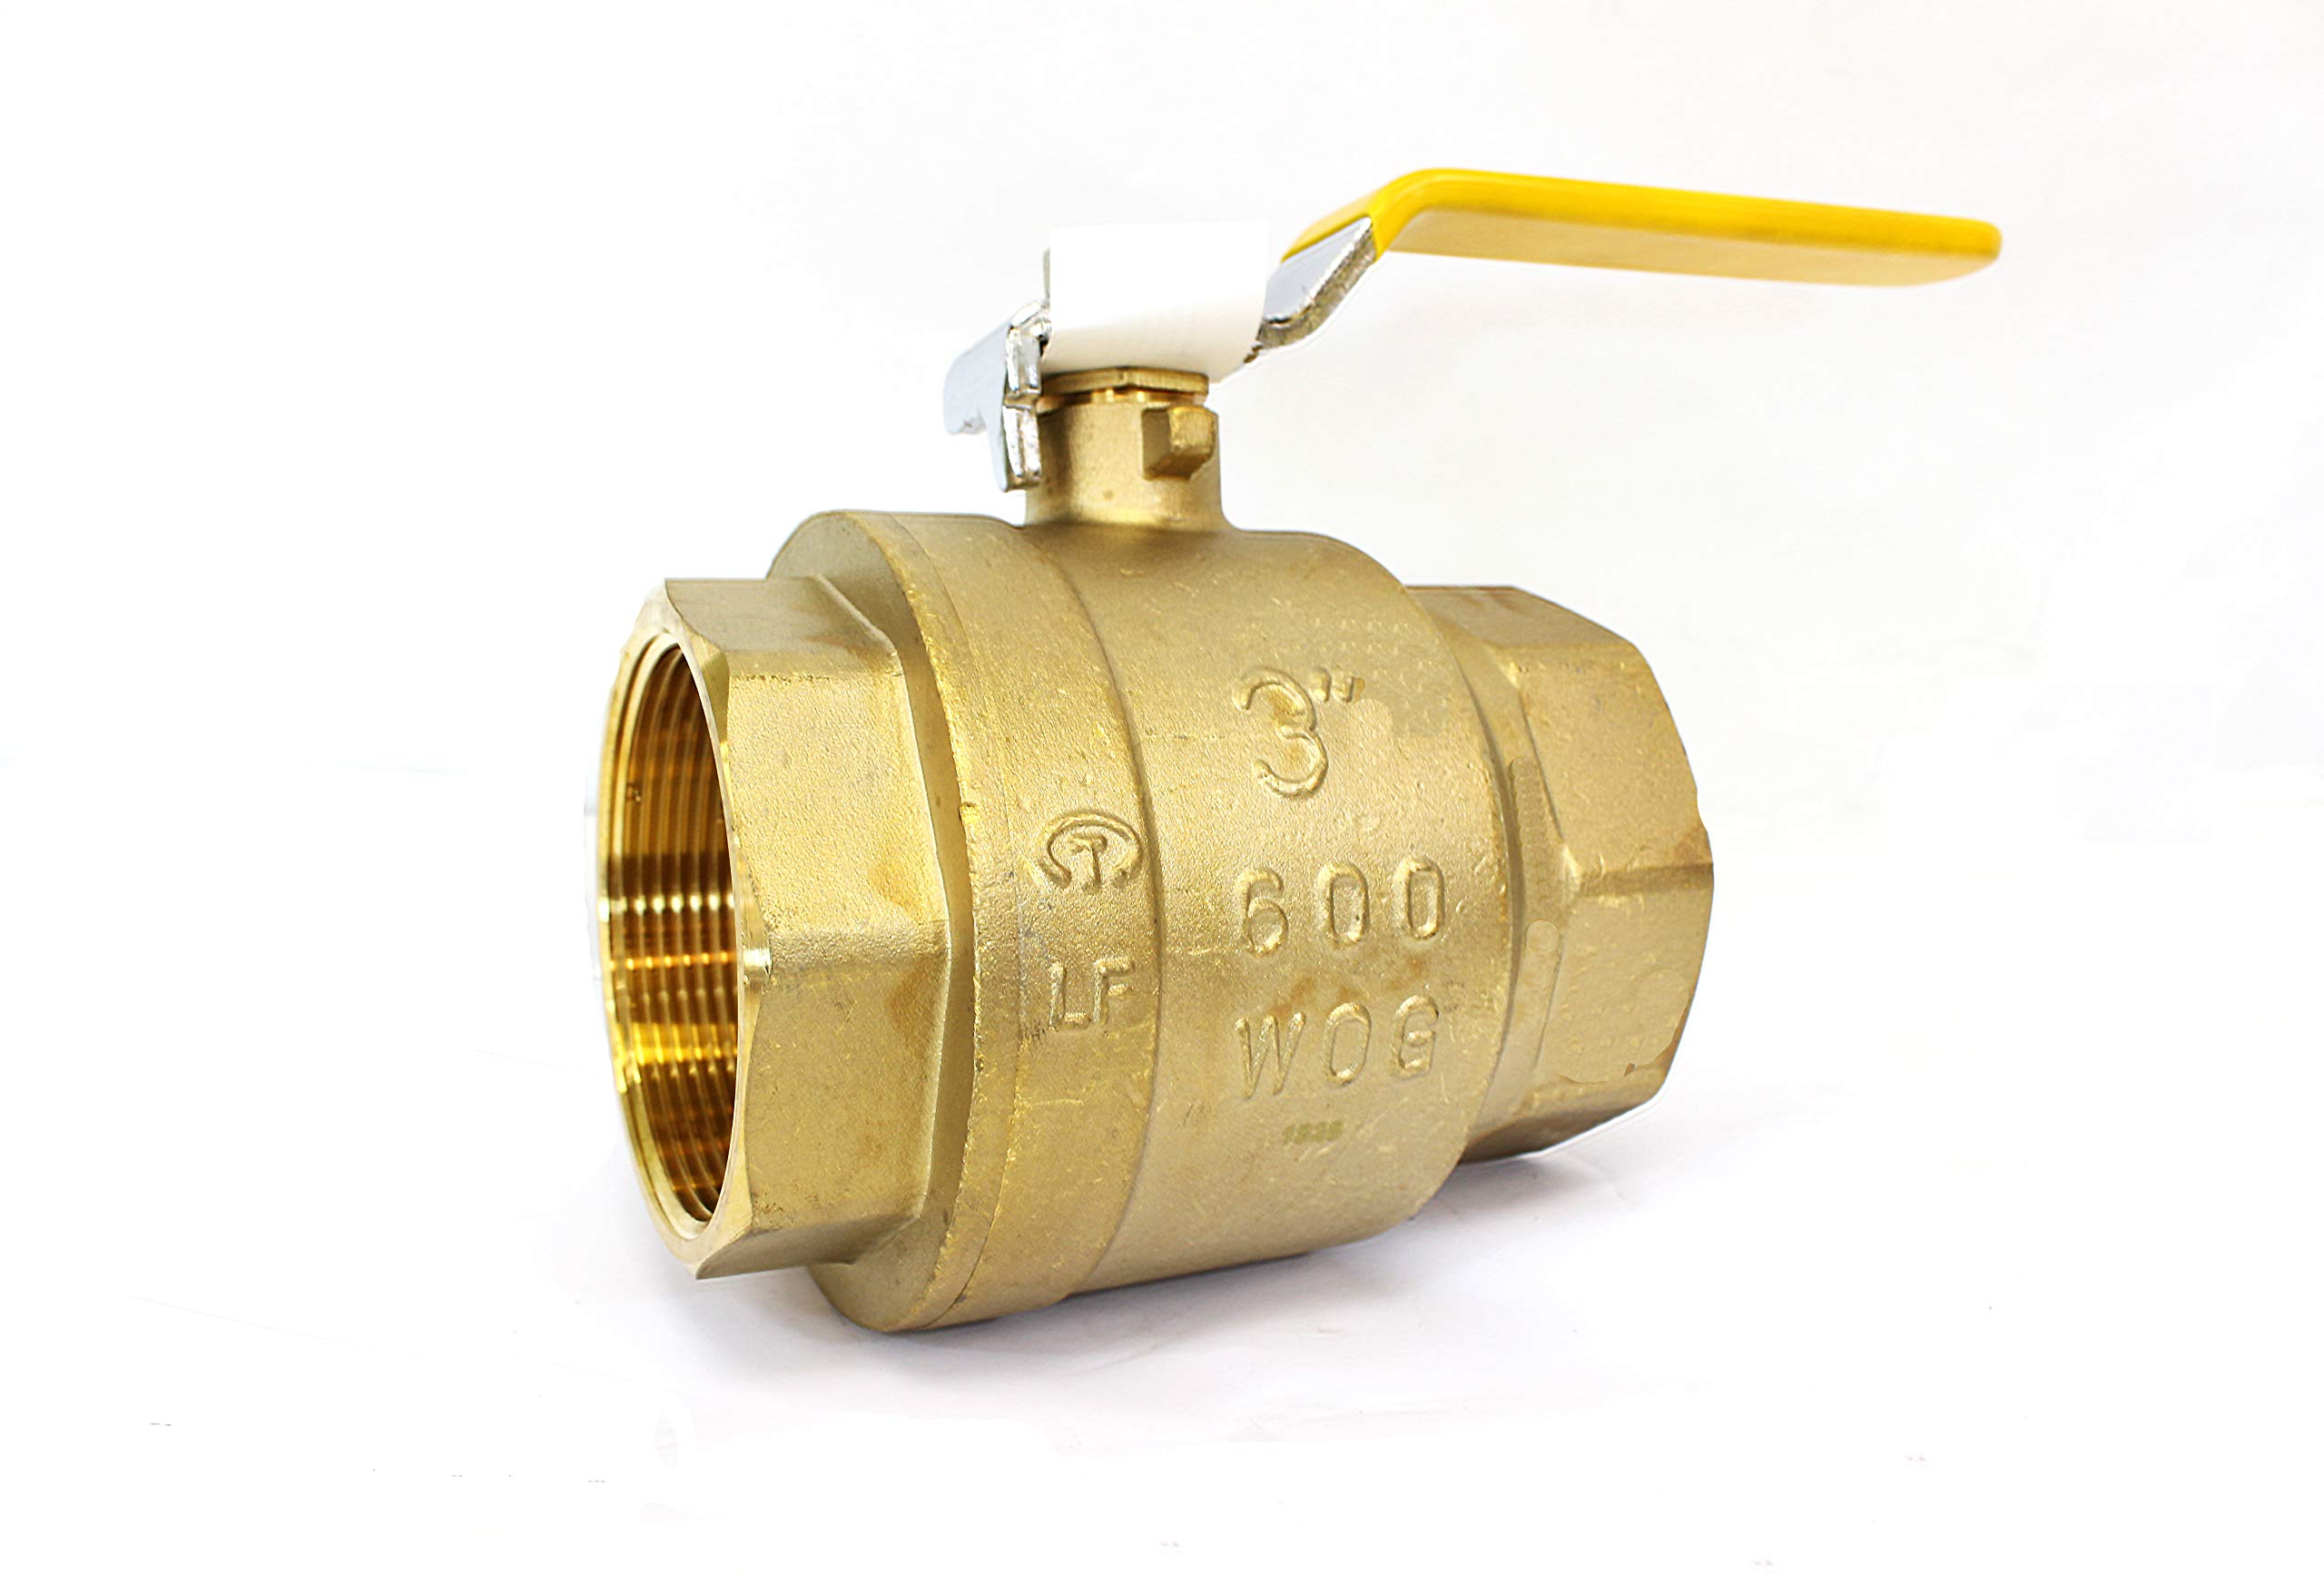 """3"""" Brass Ball Valve Threaded - IPS Full Port Irrigation Water Valves - Mechanical Lead Free Lever Handle - 3-Inch Female Thread Inline Steam Oil 600 WOG Supplies Hot Cold Pipes CSA Approved 3 Inches"""